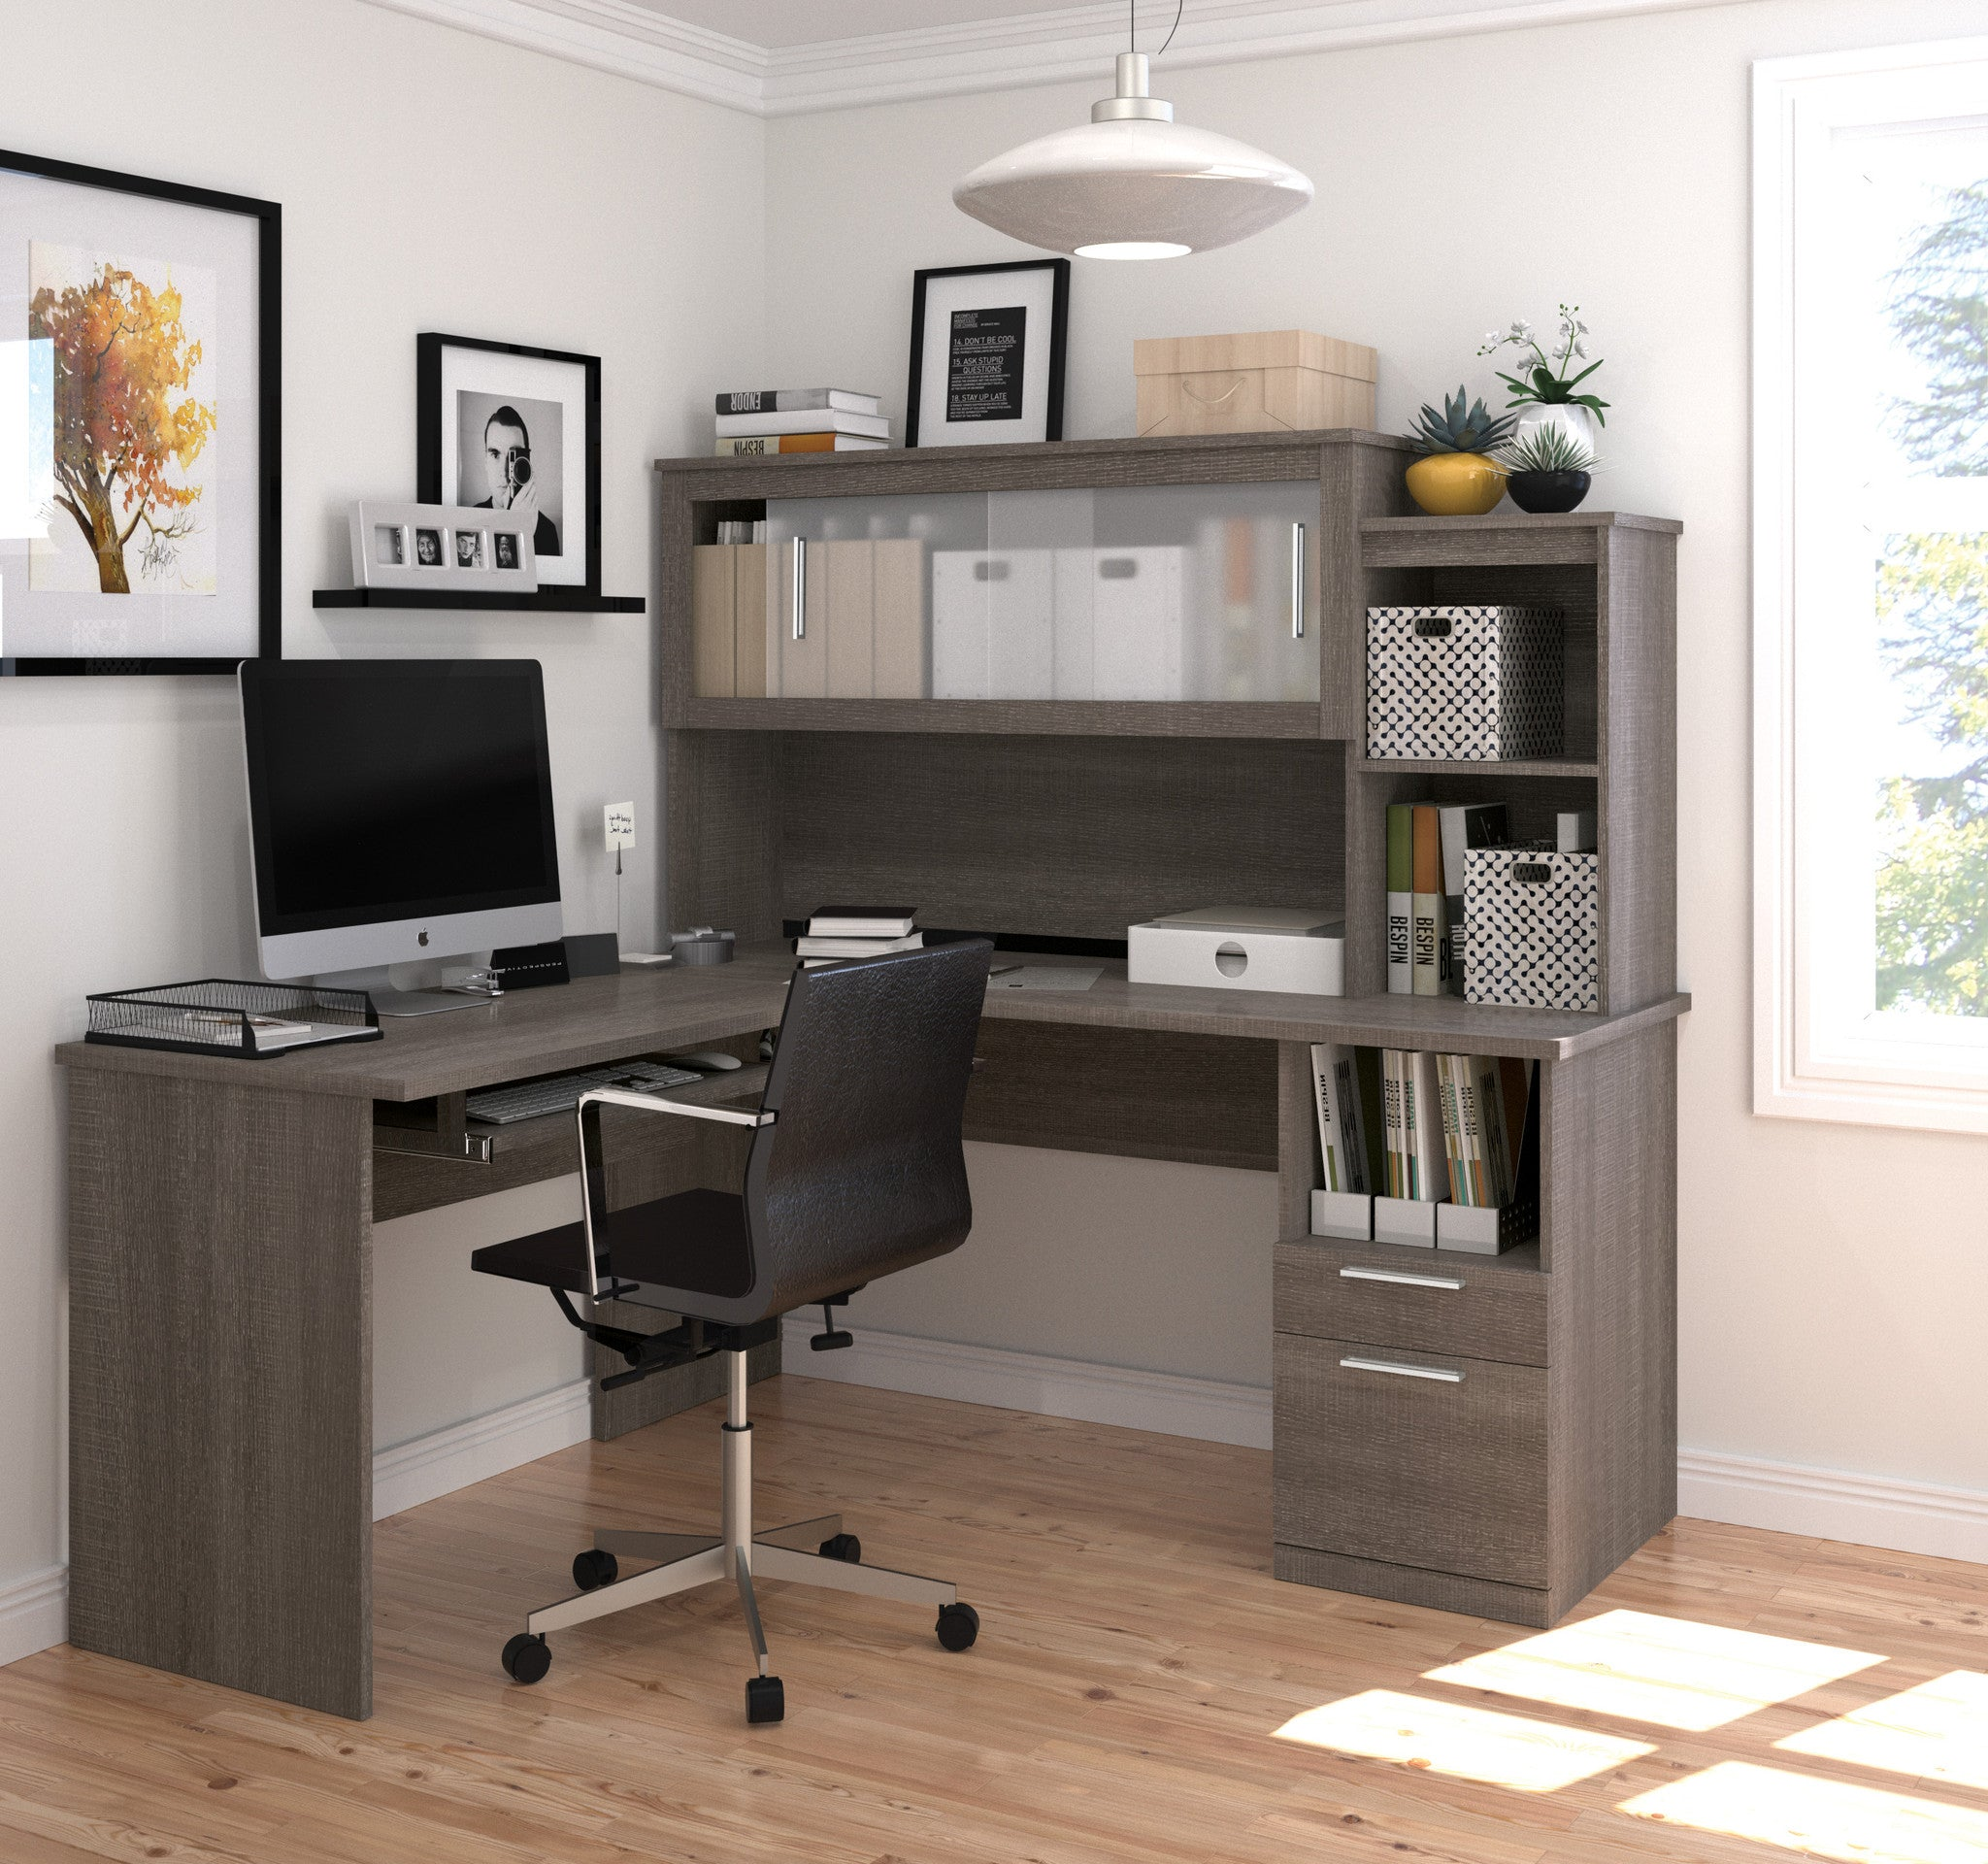 l shape office desks. L-shaped Office Desk And Hutch With Frosted Glass Doors In Bark Gray L Shape Desks